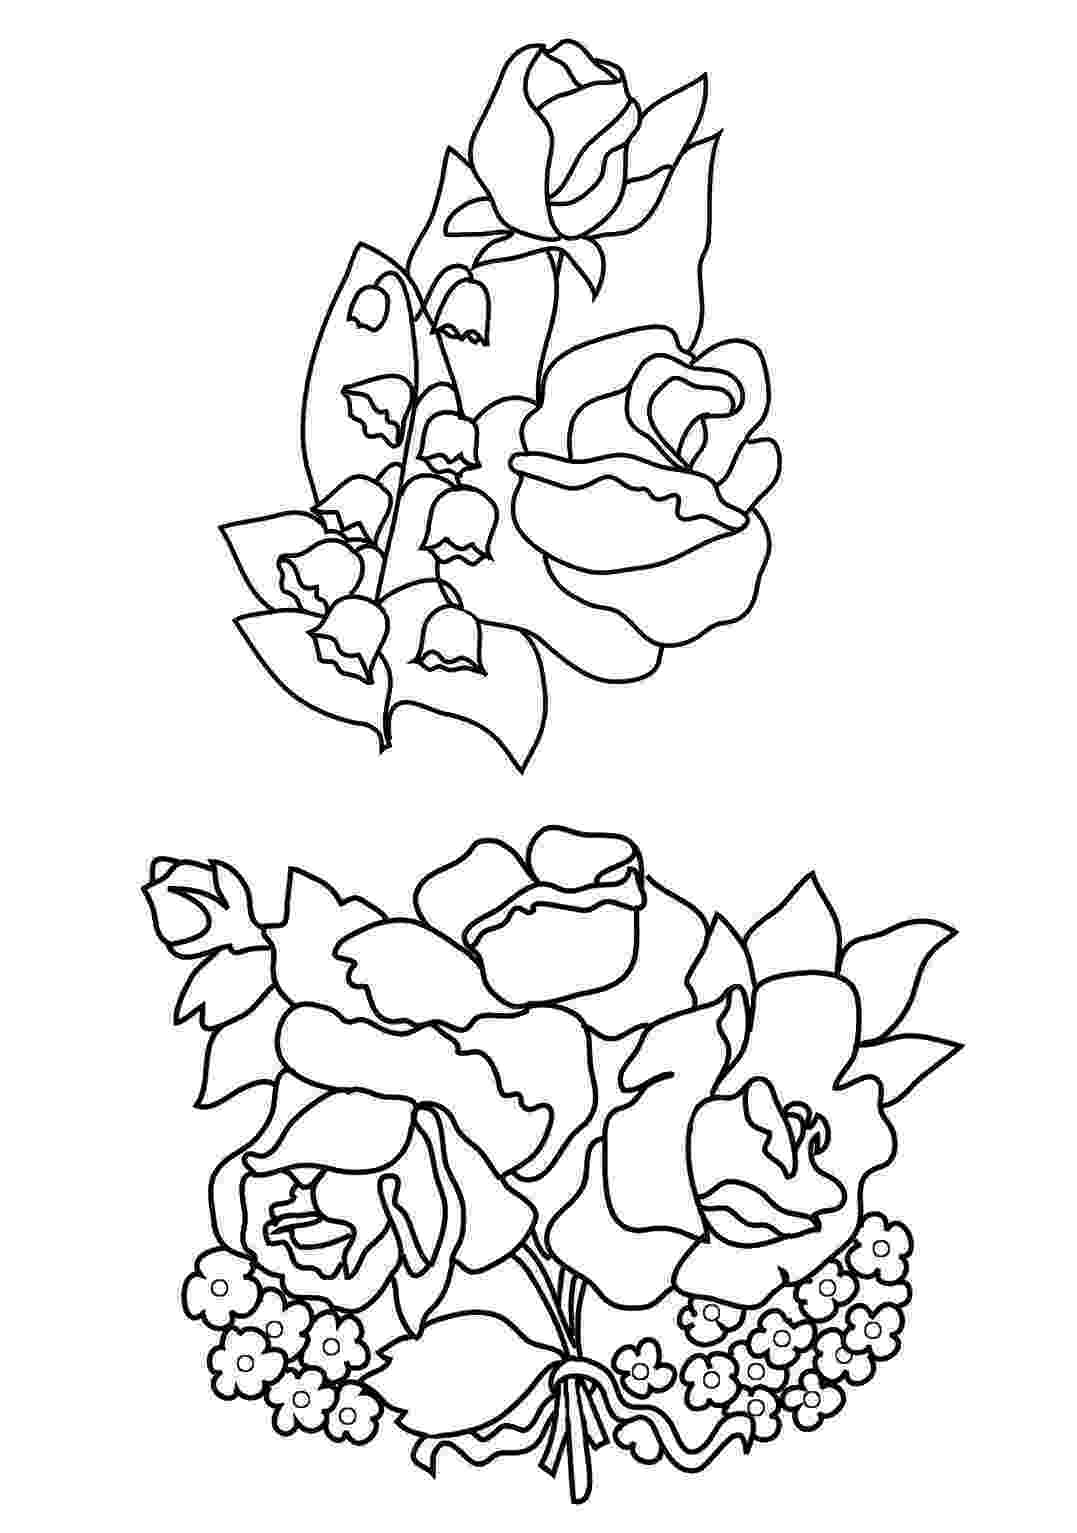 roses color pages printable rose coloring pages for kids cool2bkids roses pages color 1 2